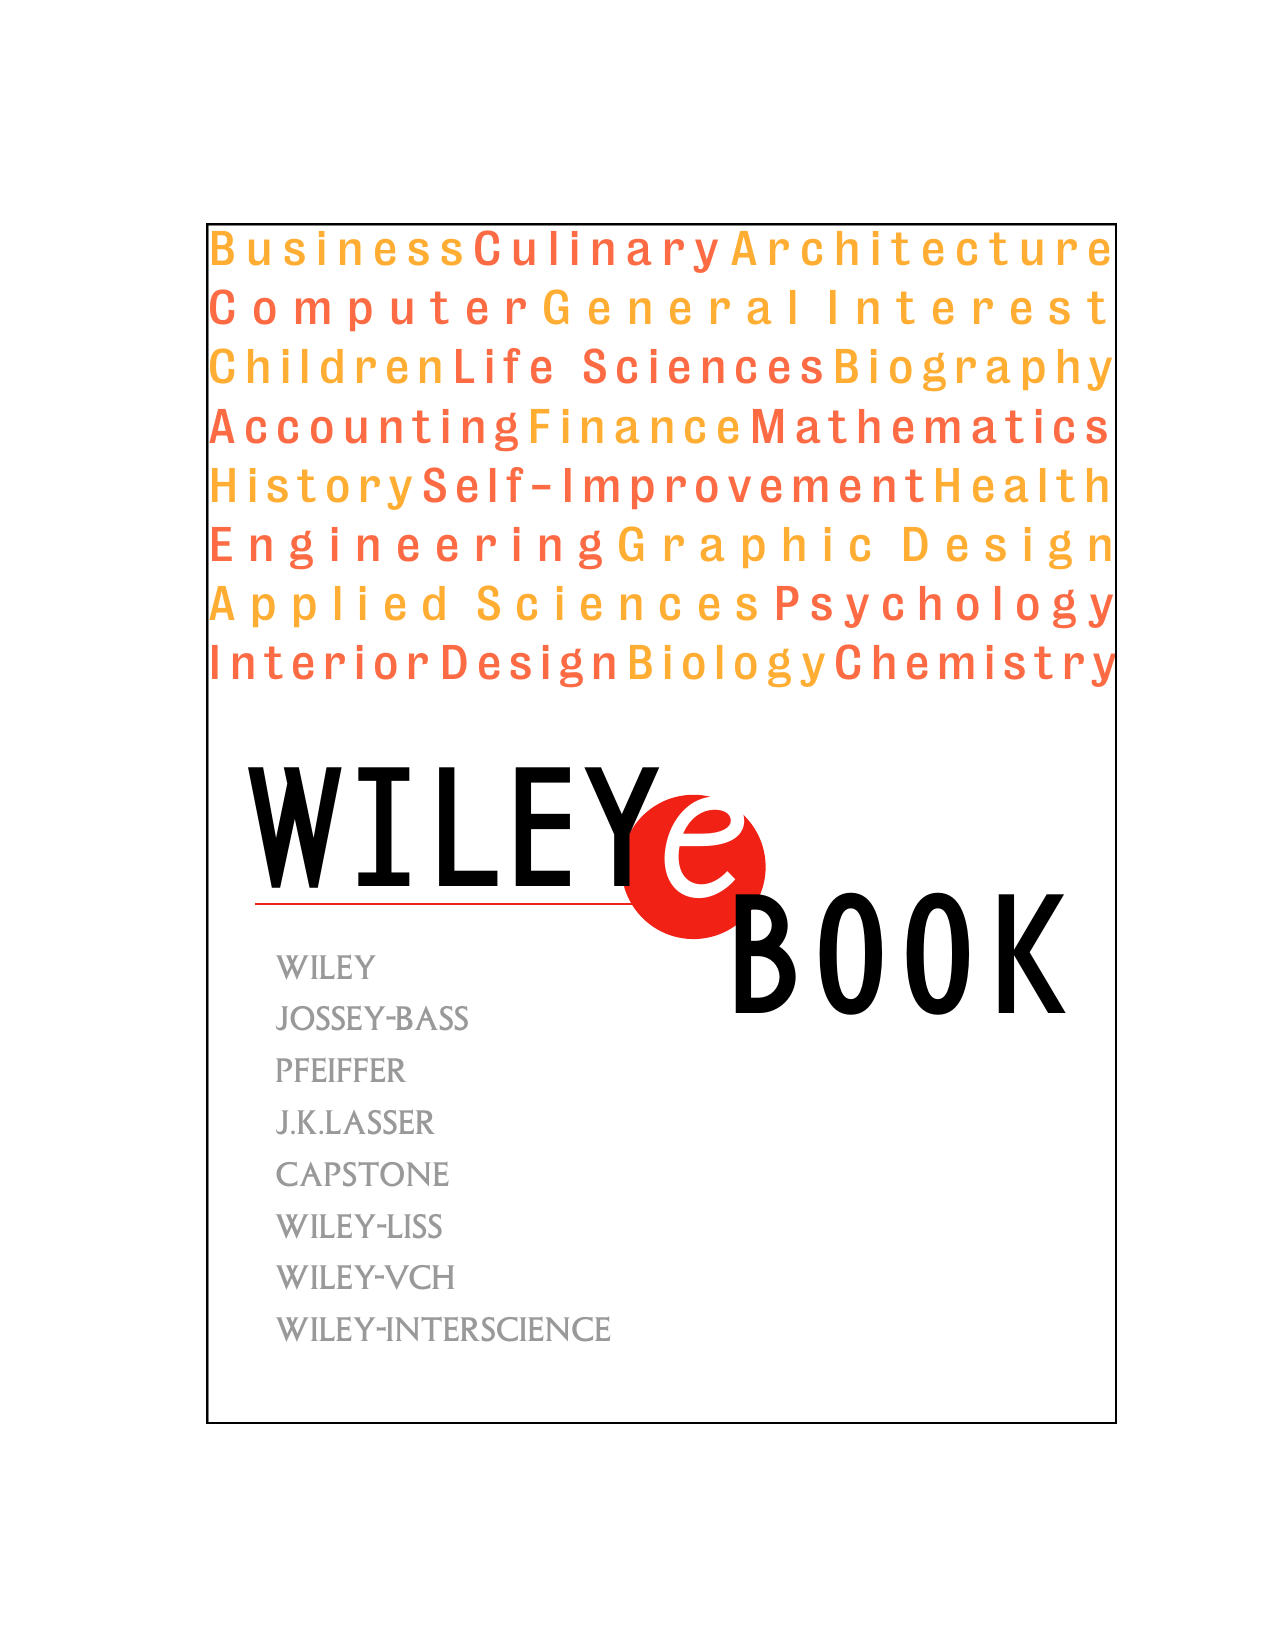 Chetan Sharma Wireless Internet Enterprise Applications A Wiley Integrated Circuit Electronics M363 70 C Tech Brief 2000